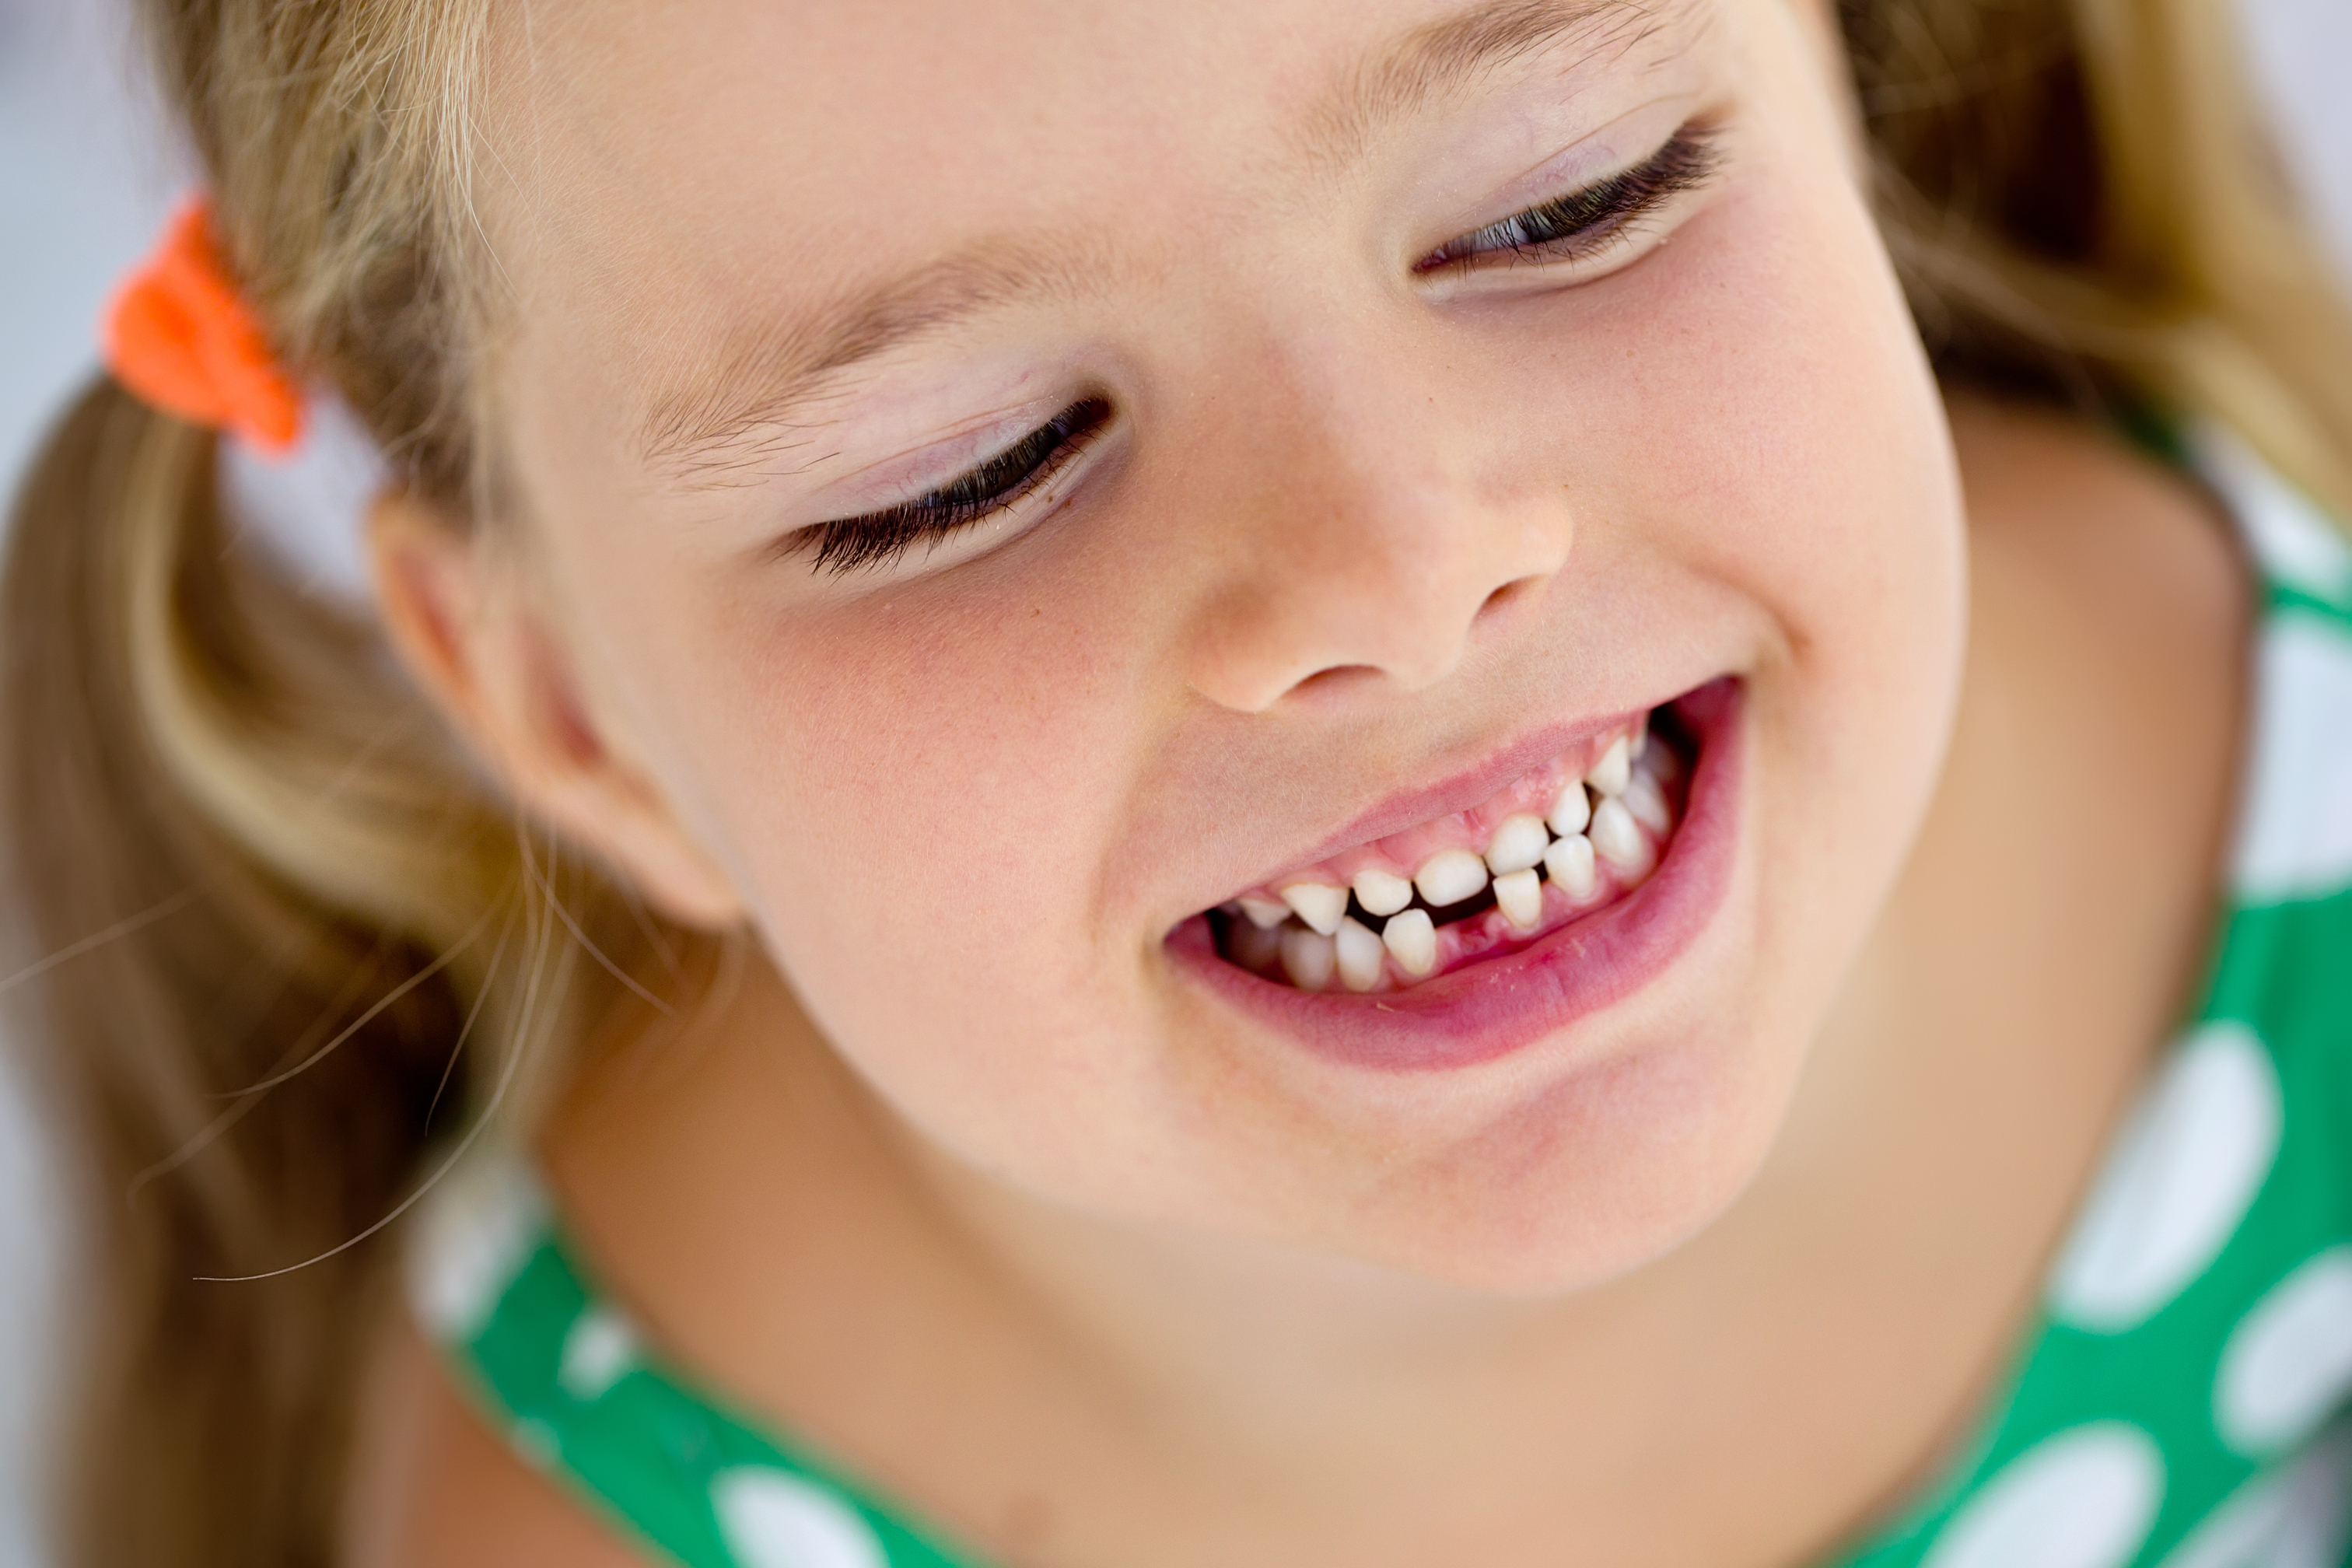 Young girl smiling with missing tooth